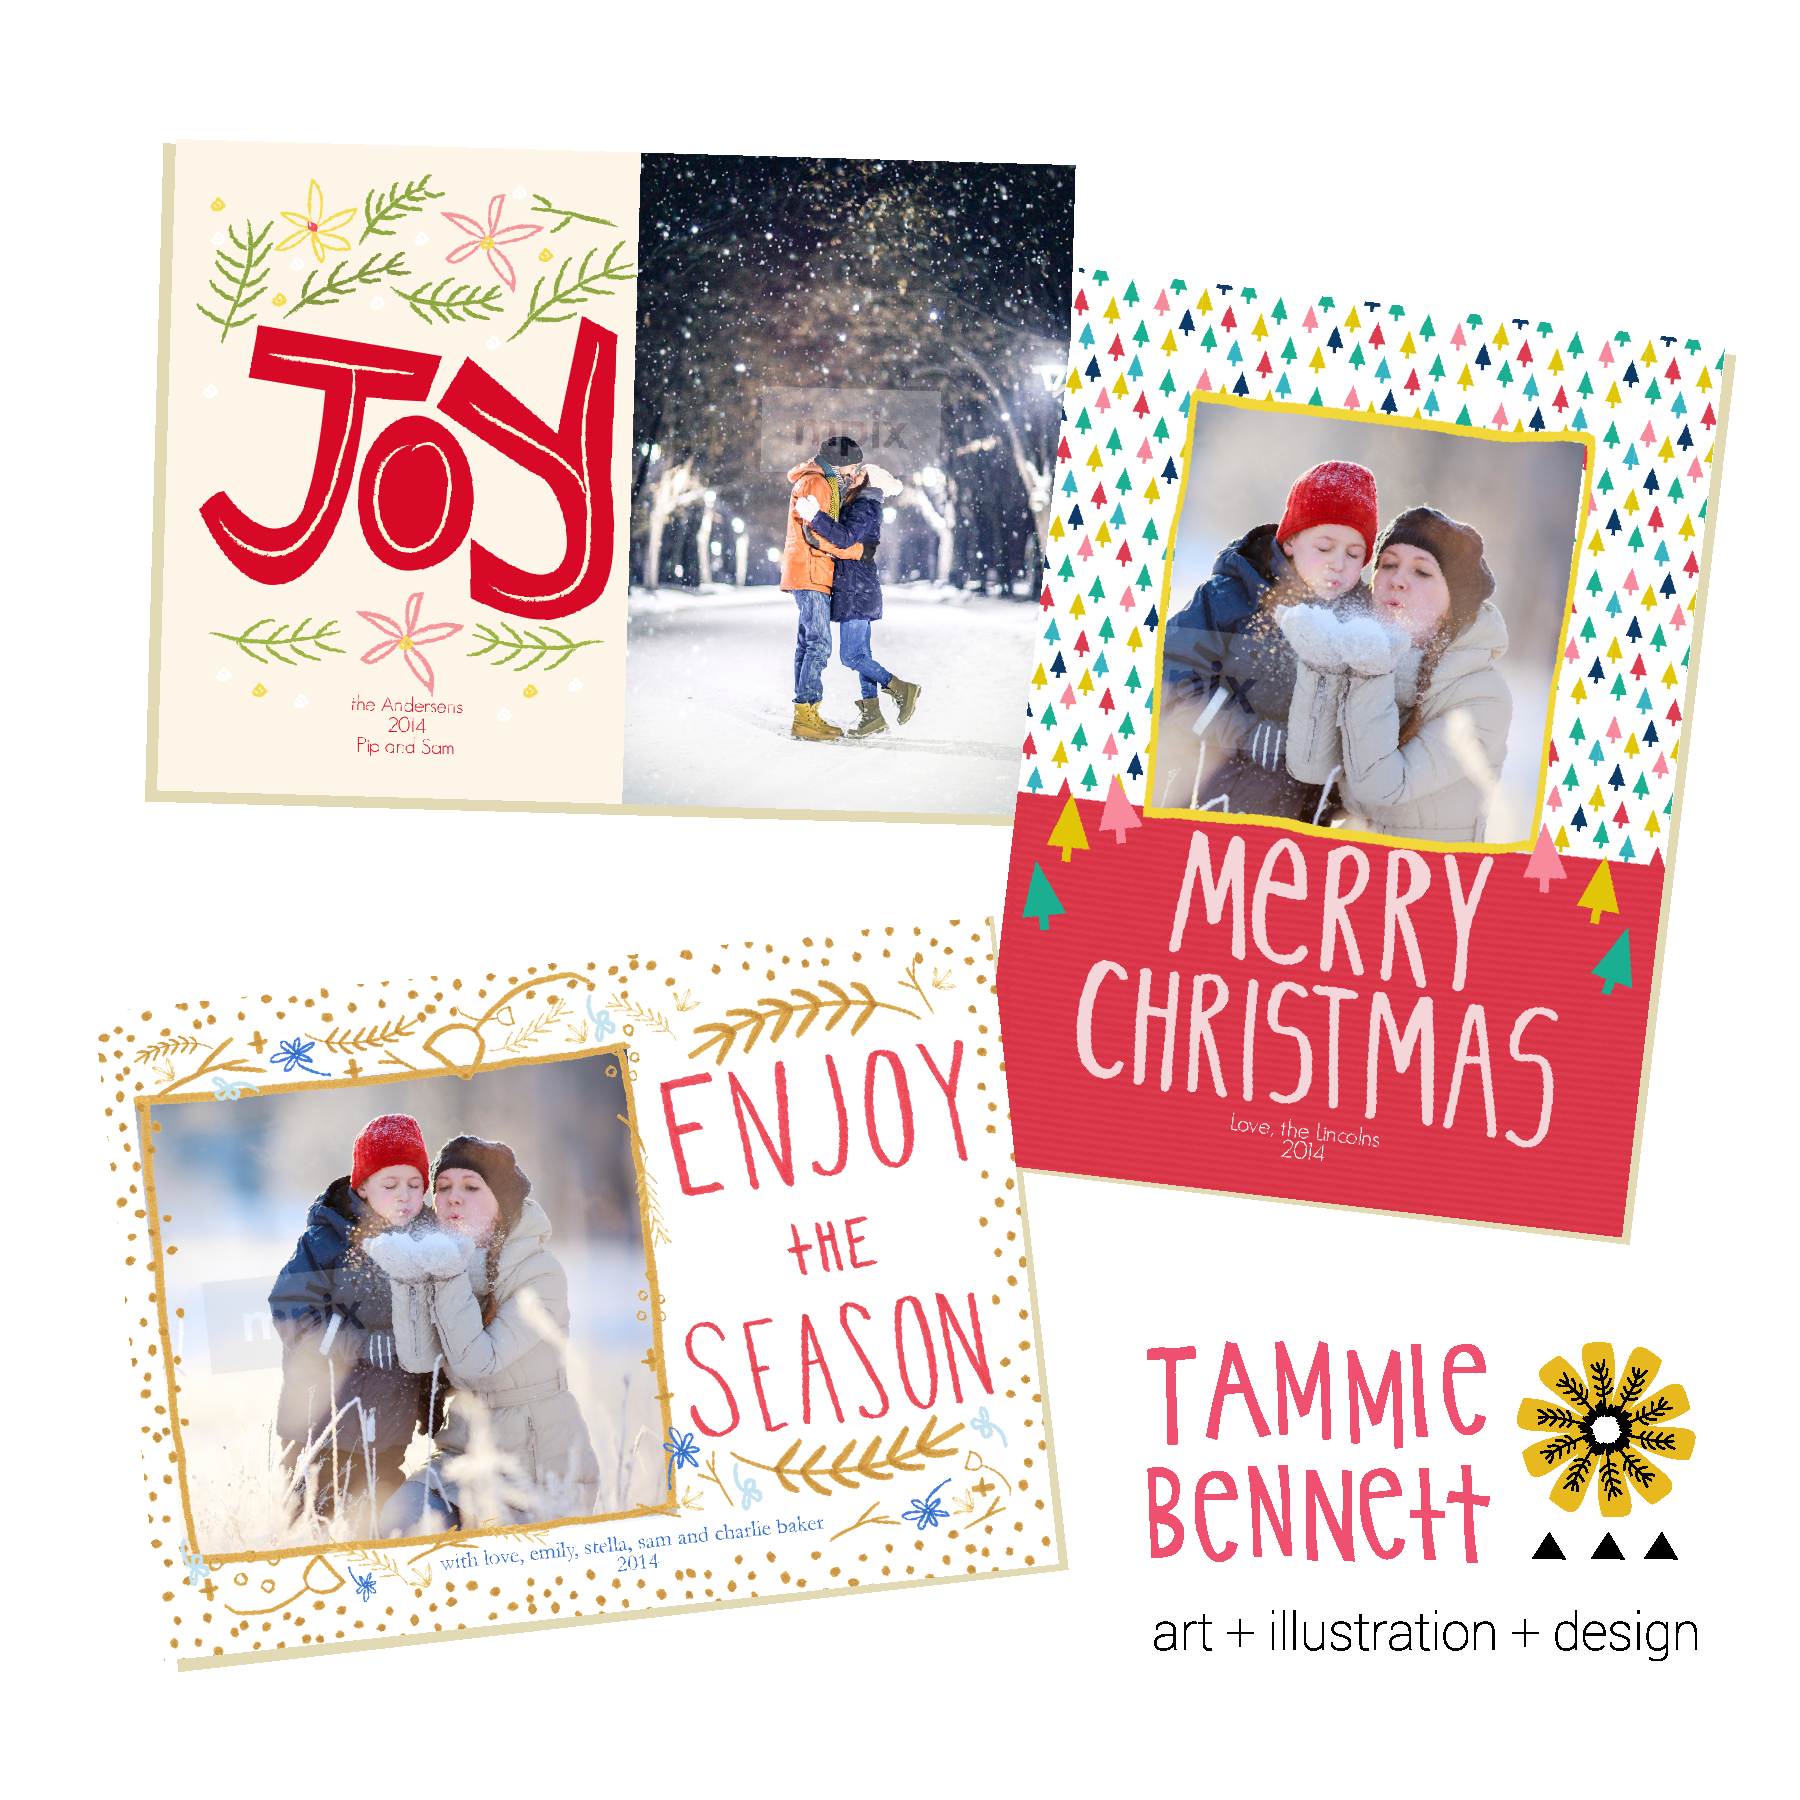 tam bennett holiday photo card templates on mpix.com